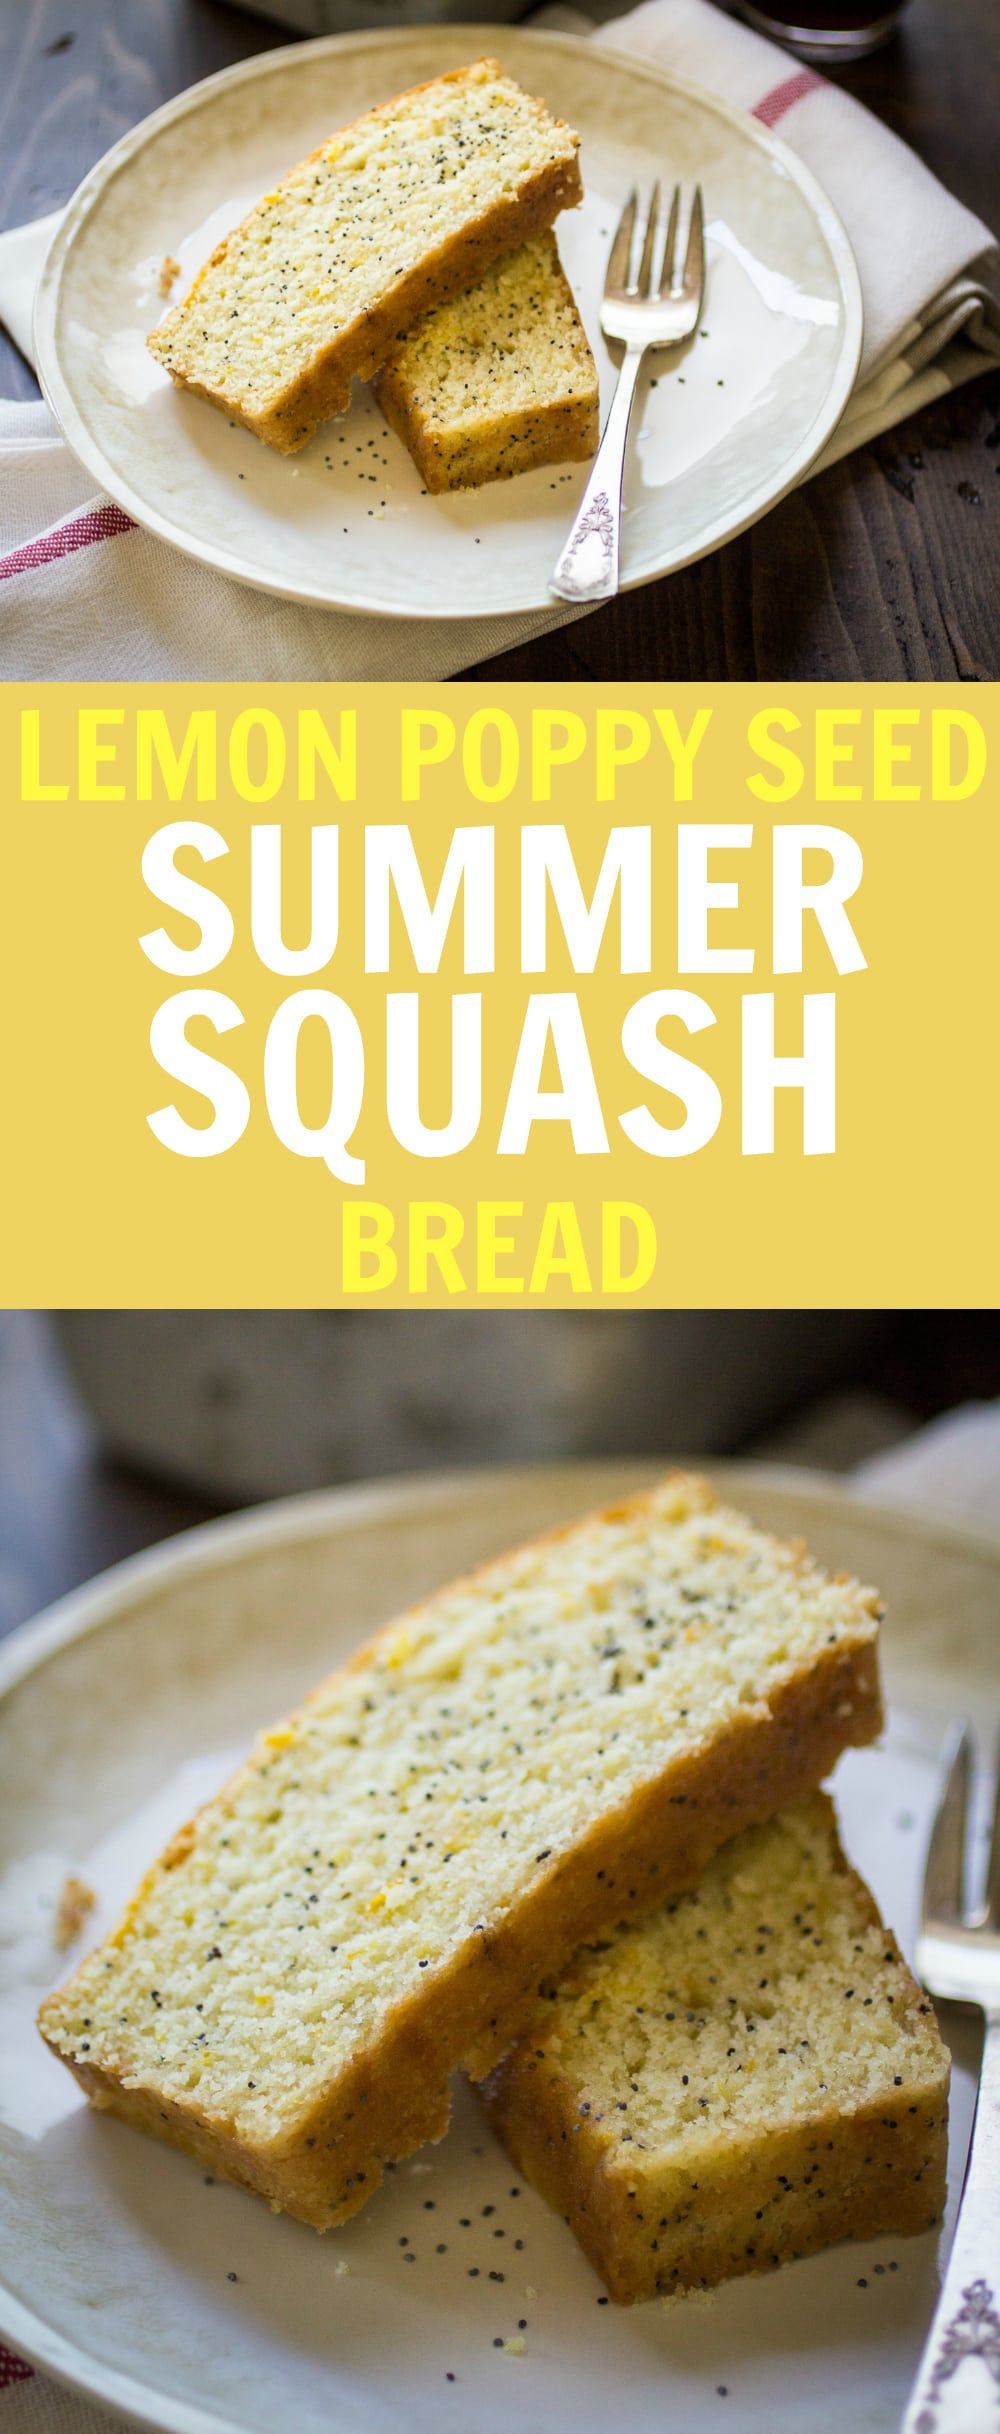 Summer Squash Bread is the best way to use up all those giant yellow squash in the garden!